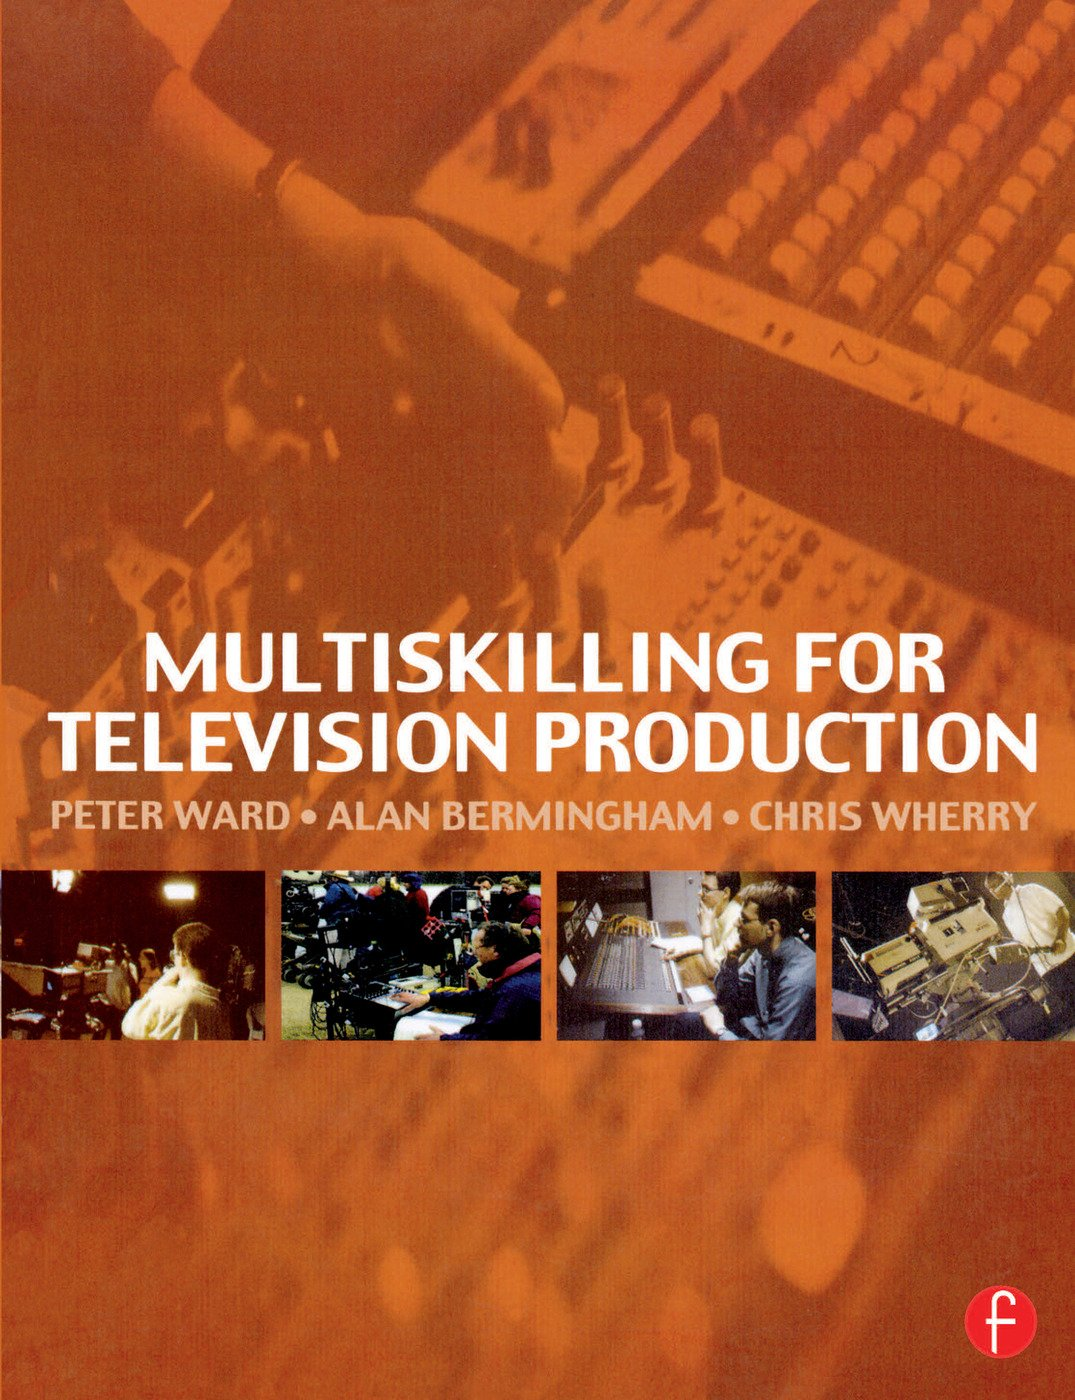 Multiskilling for Television Production book cover